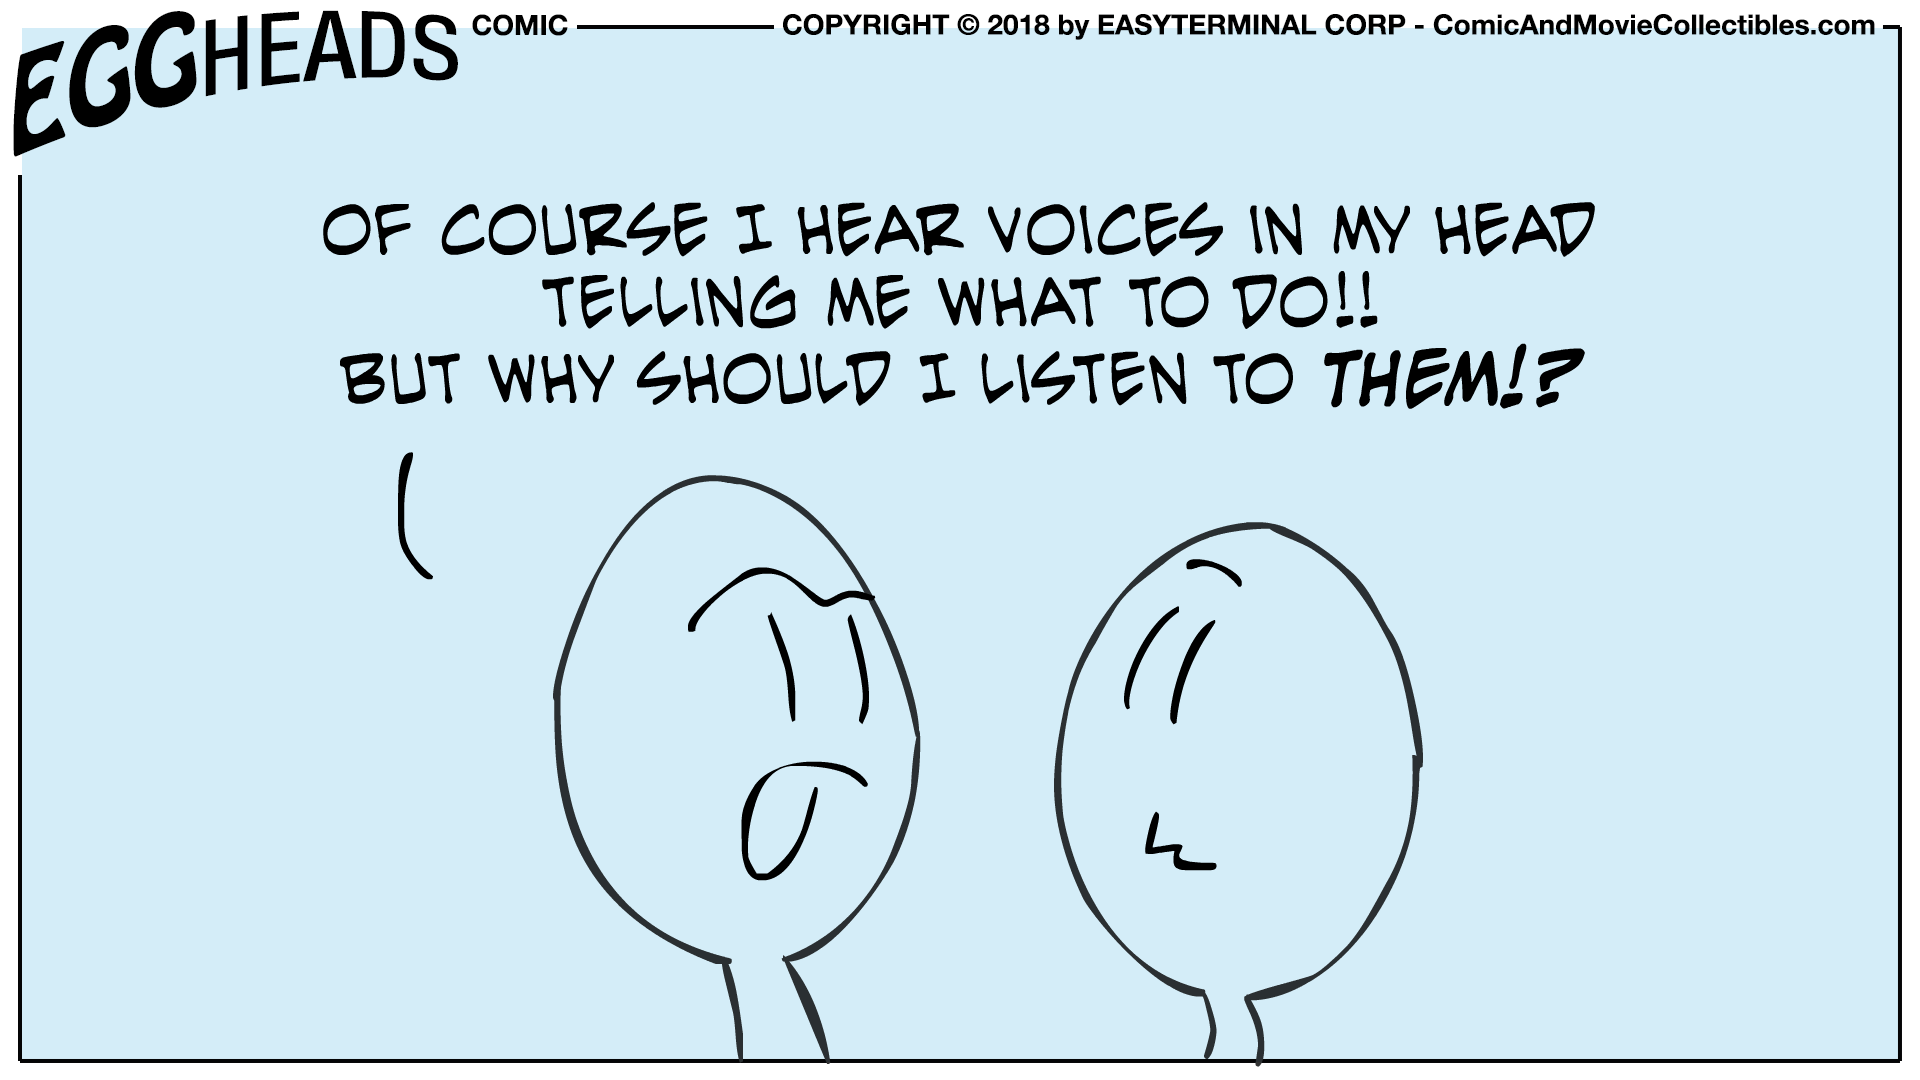 Webcomic Eggheads Comic Strip 029 I Hear Voices